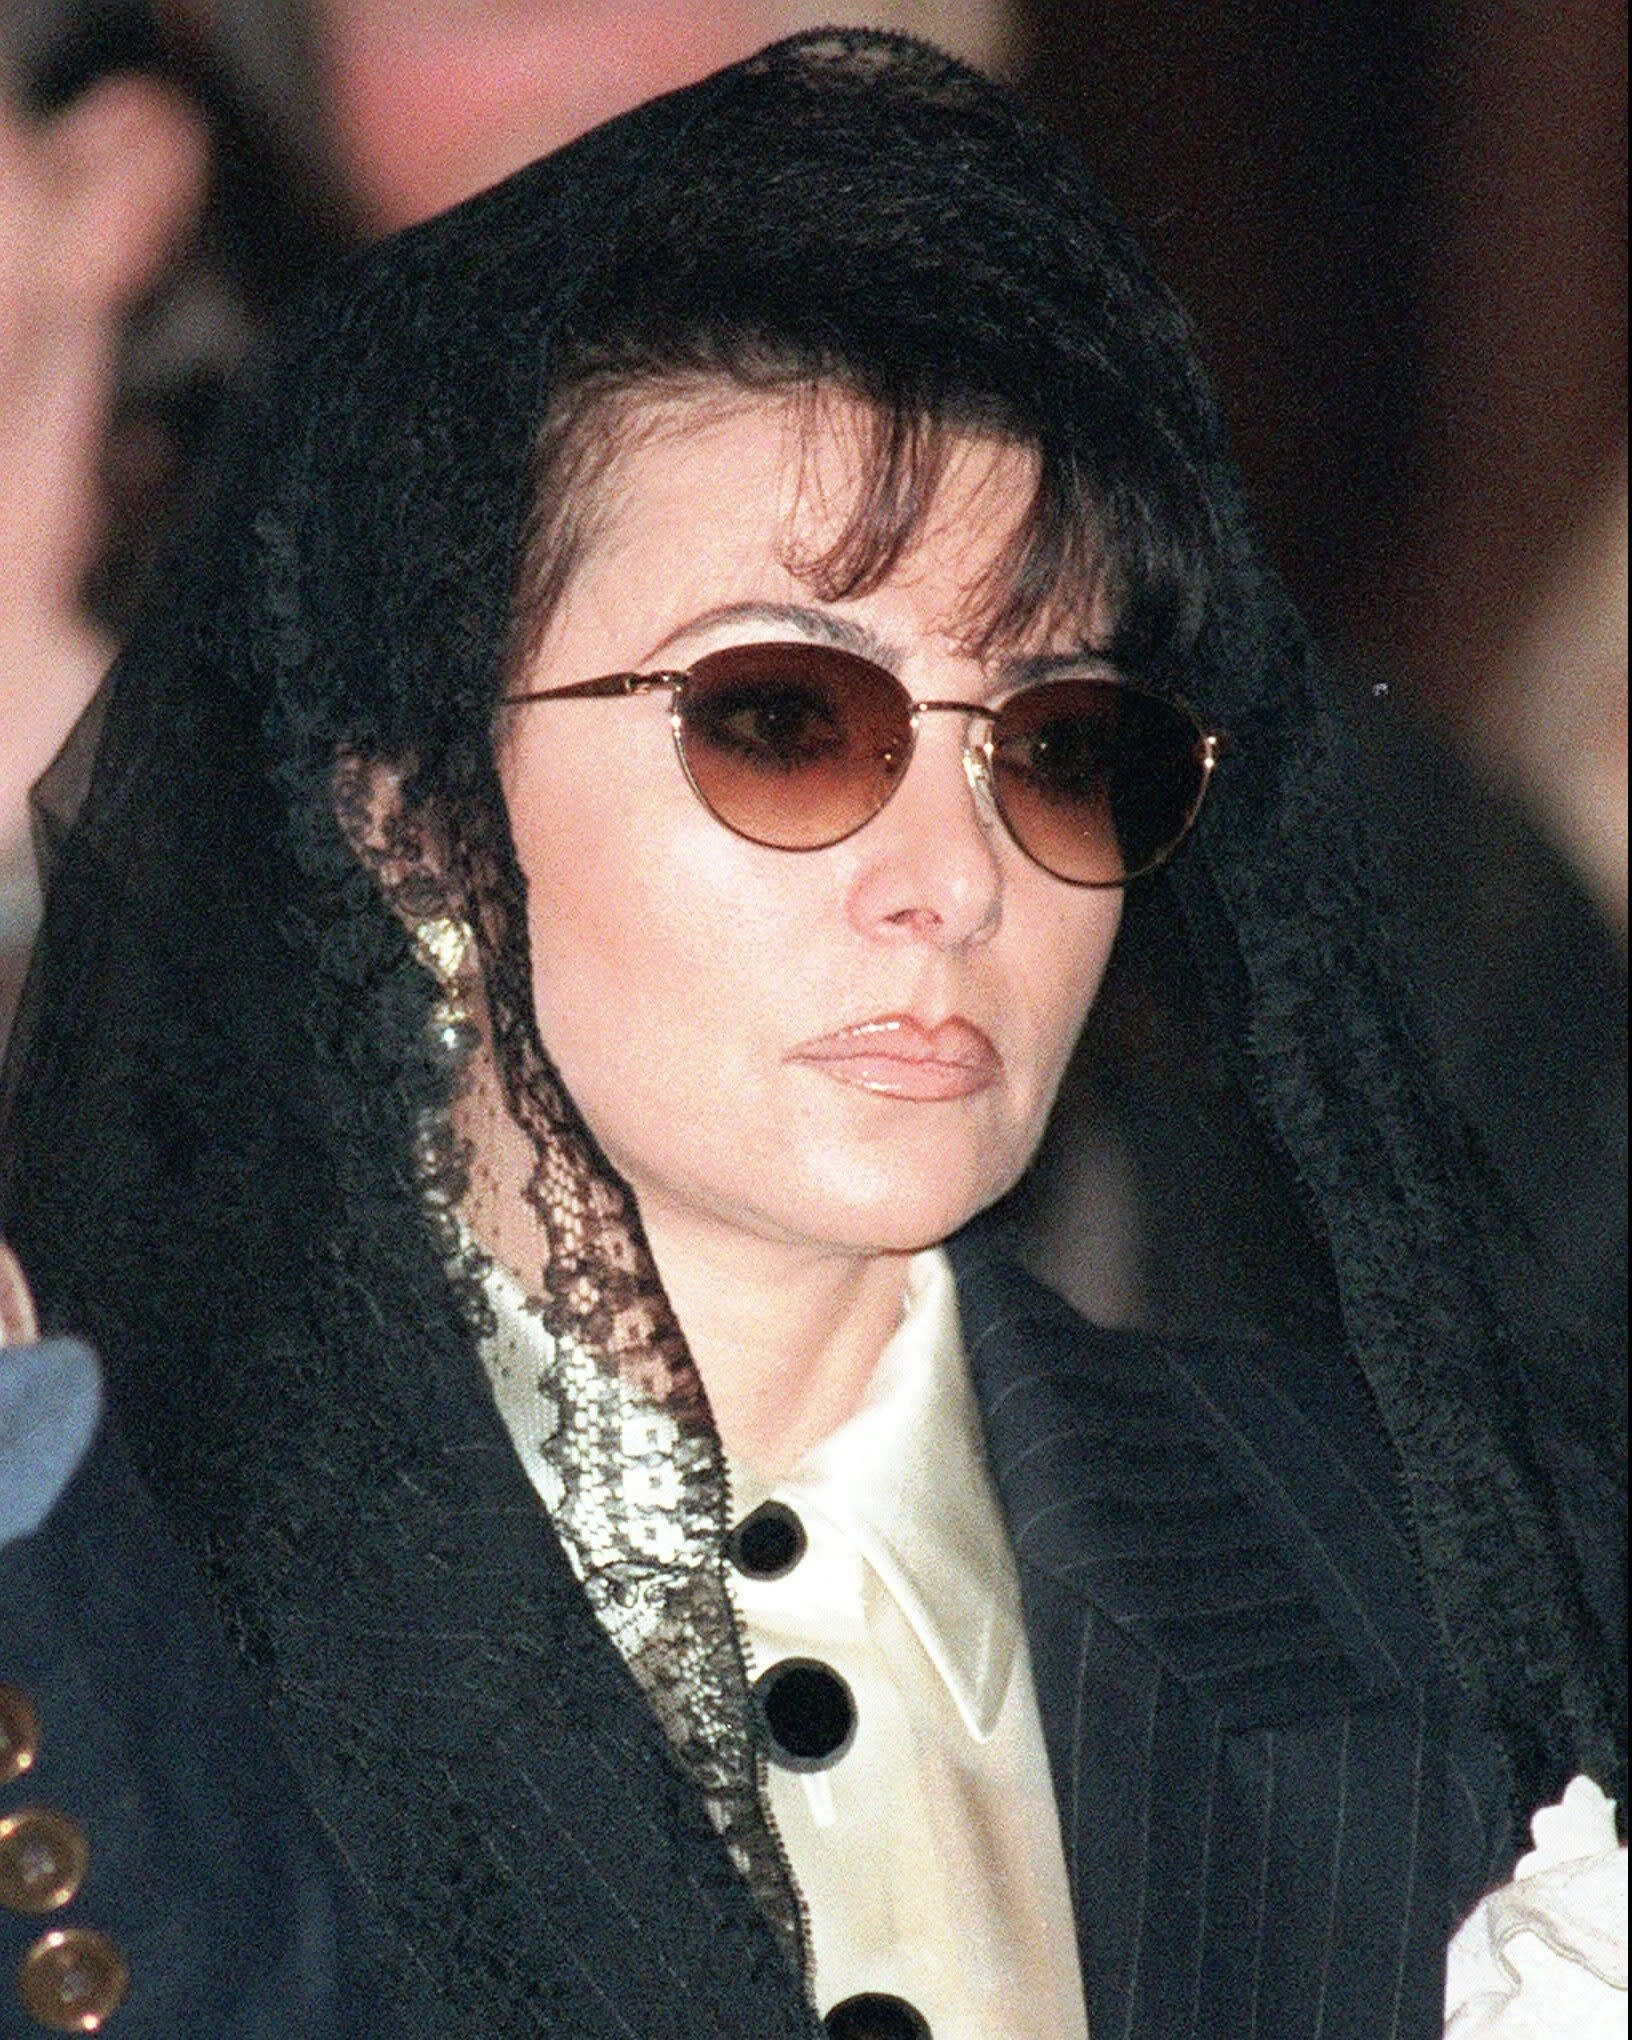 Lady Gaga wearing a veil over her head and sunglasses